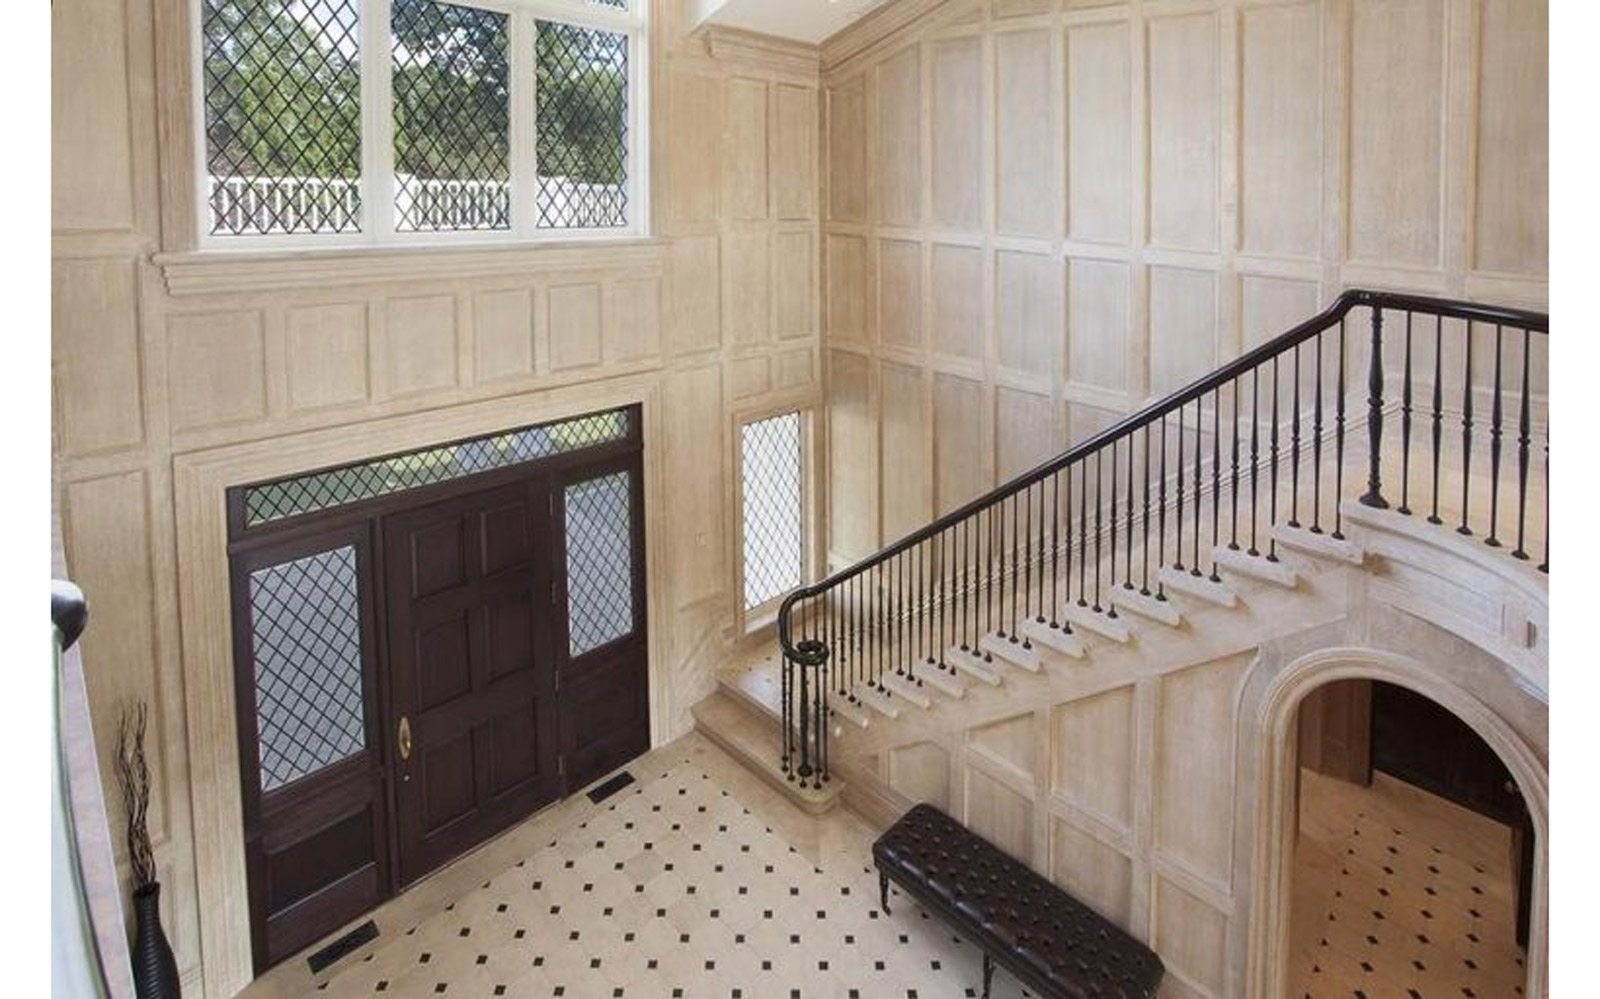 Foyer in Beyoncé and JAY-Z's Hampton house